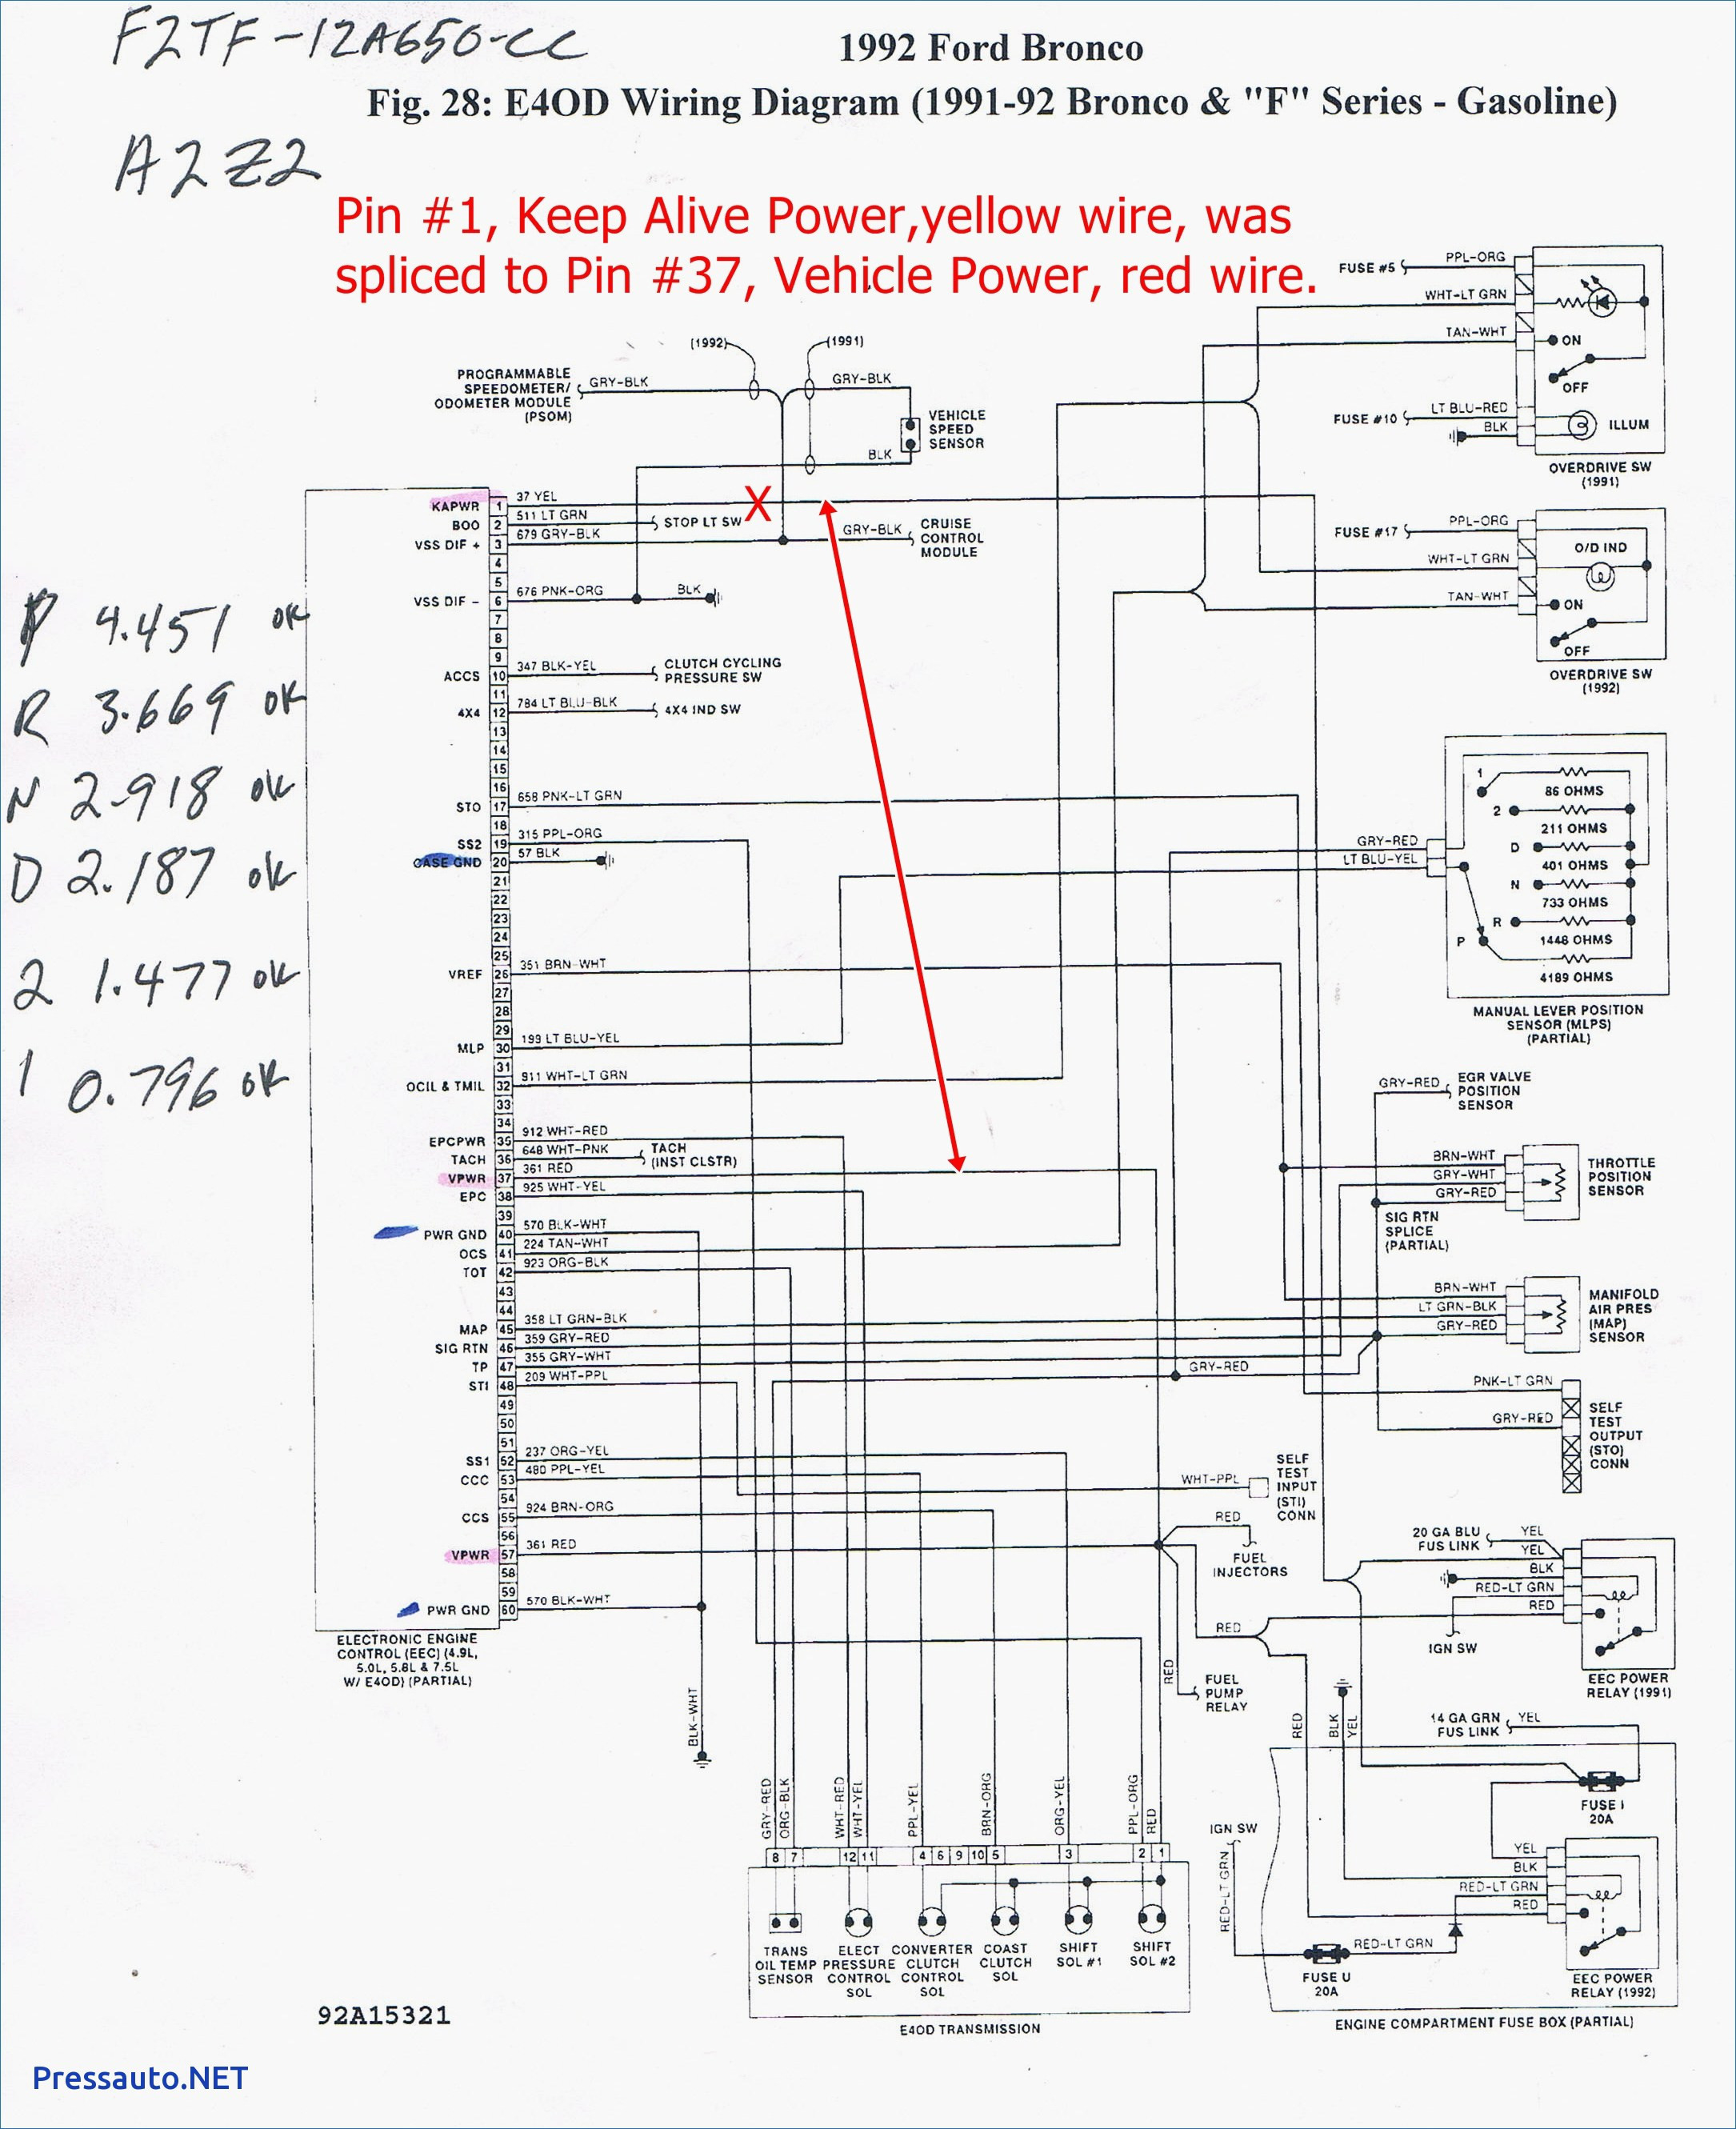 2017 ford f550 pto wiring diagram Collection-2017 ford F550 Pto Wiring Diagram Valid 2017 ford F550 Pto Wiring Diagram New astonishing 2002 8-f